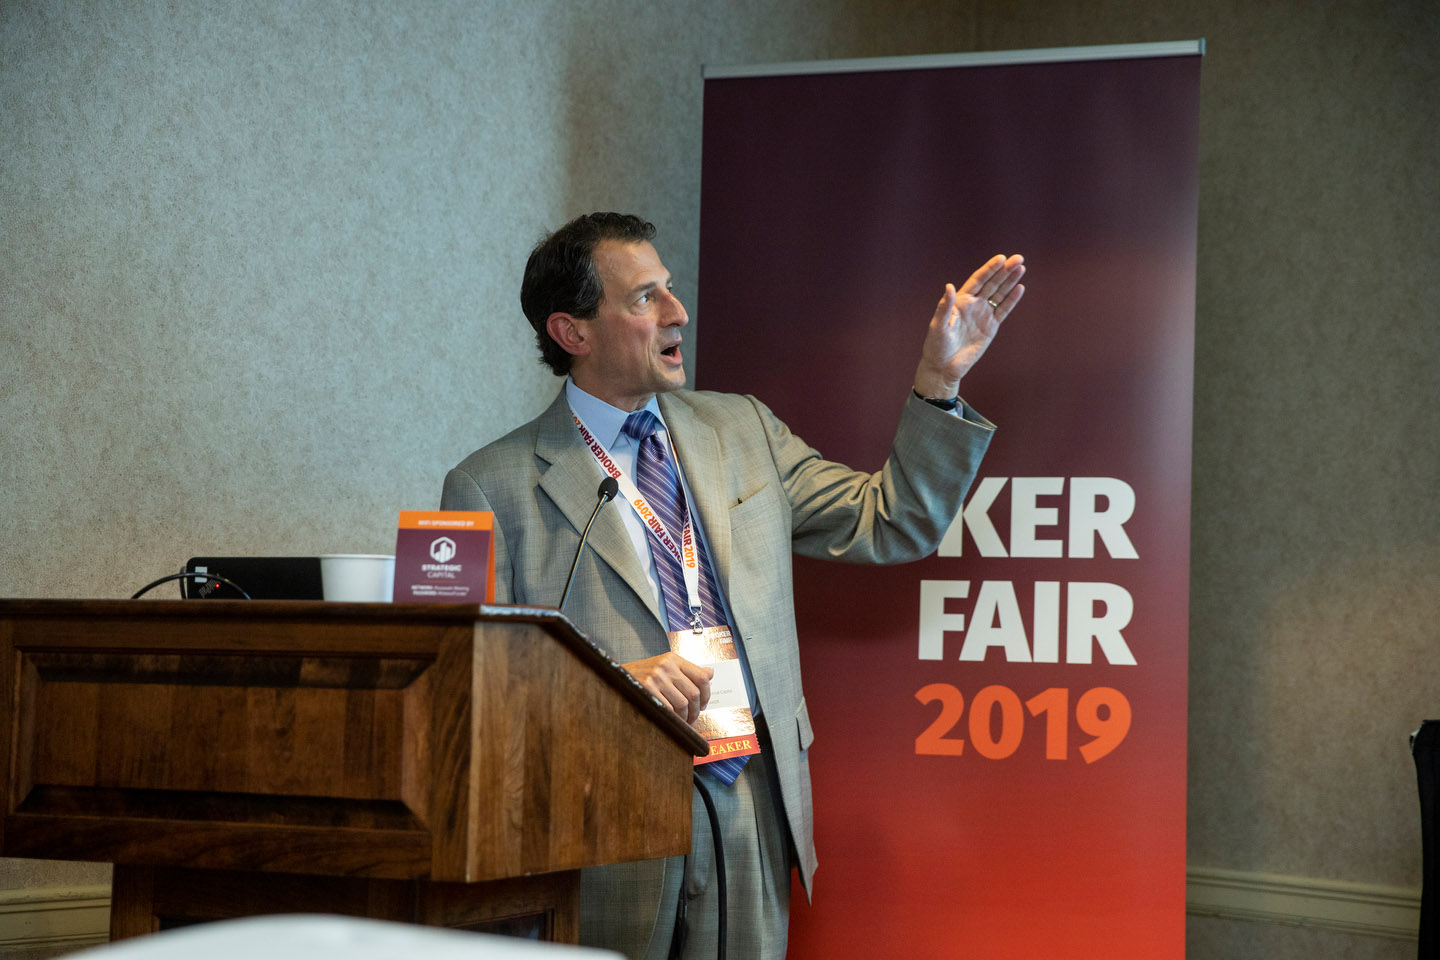 Broker Fair 2019 - Presented by deBanked - 245